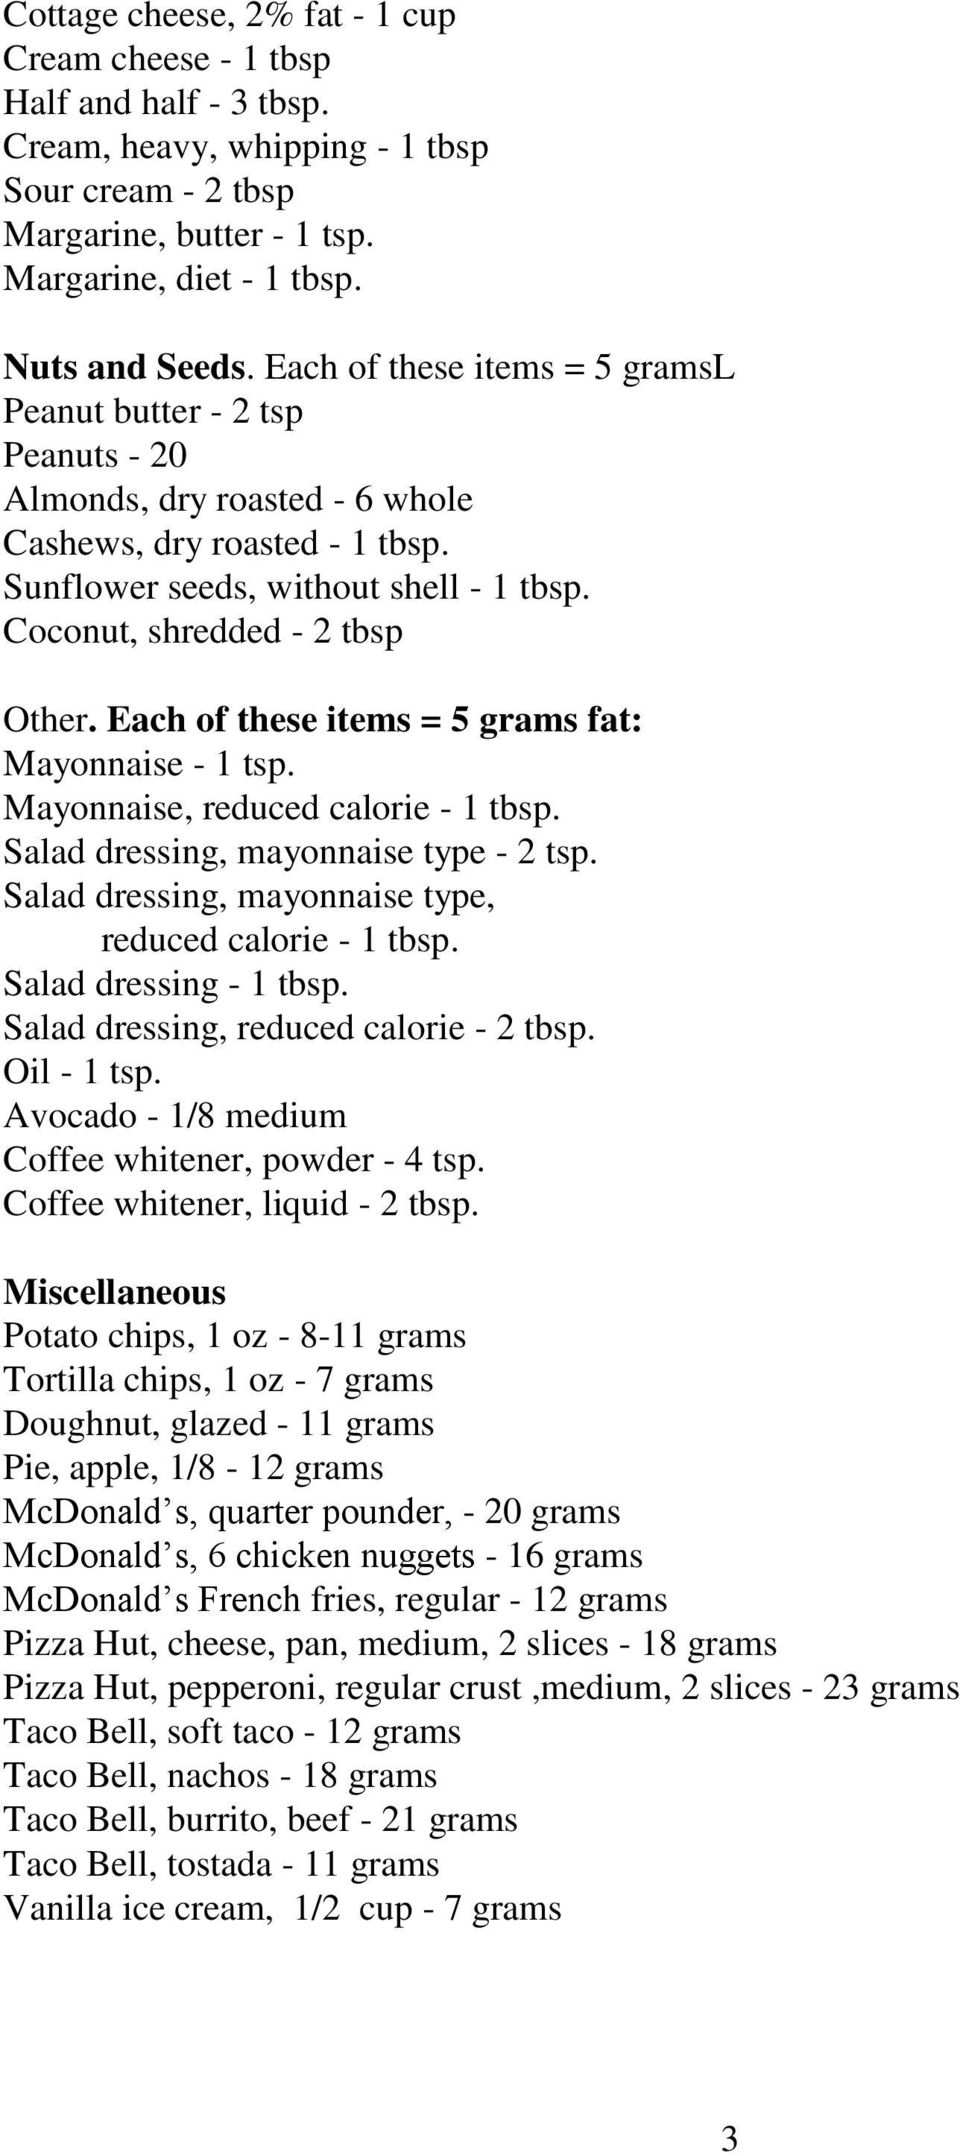 Coconut, shredded - 2 tbsp Other. Each of these items = 5 grams fat: Mayonnaise - 1 tsp. Mayonnaise, reduced calorie - 1 tbsp. Salad dressing, mayonnaise type - 2 tsp.